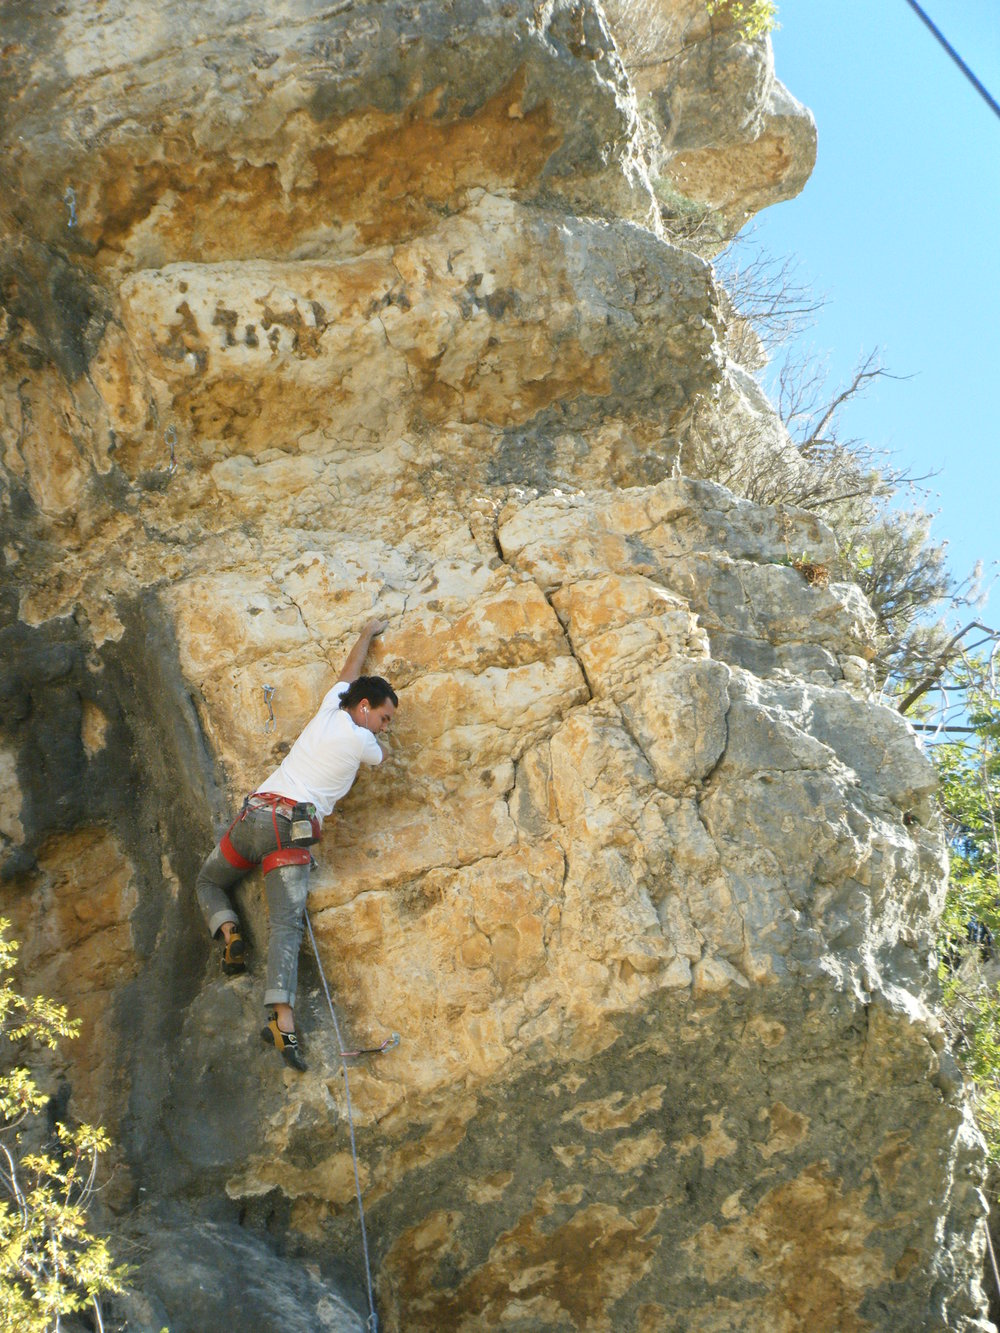 Ulric Rousseau on Les Enfants Terribles 7a+